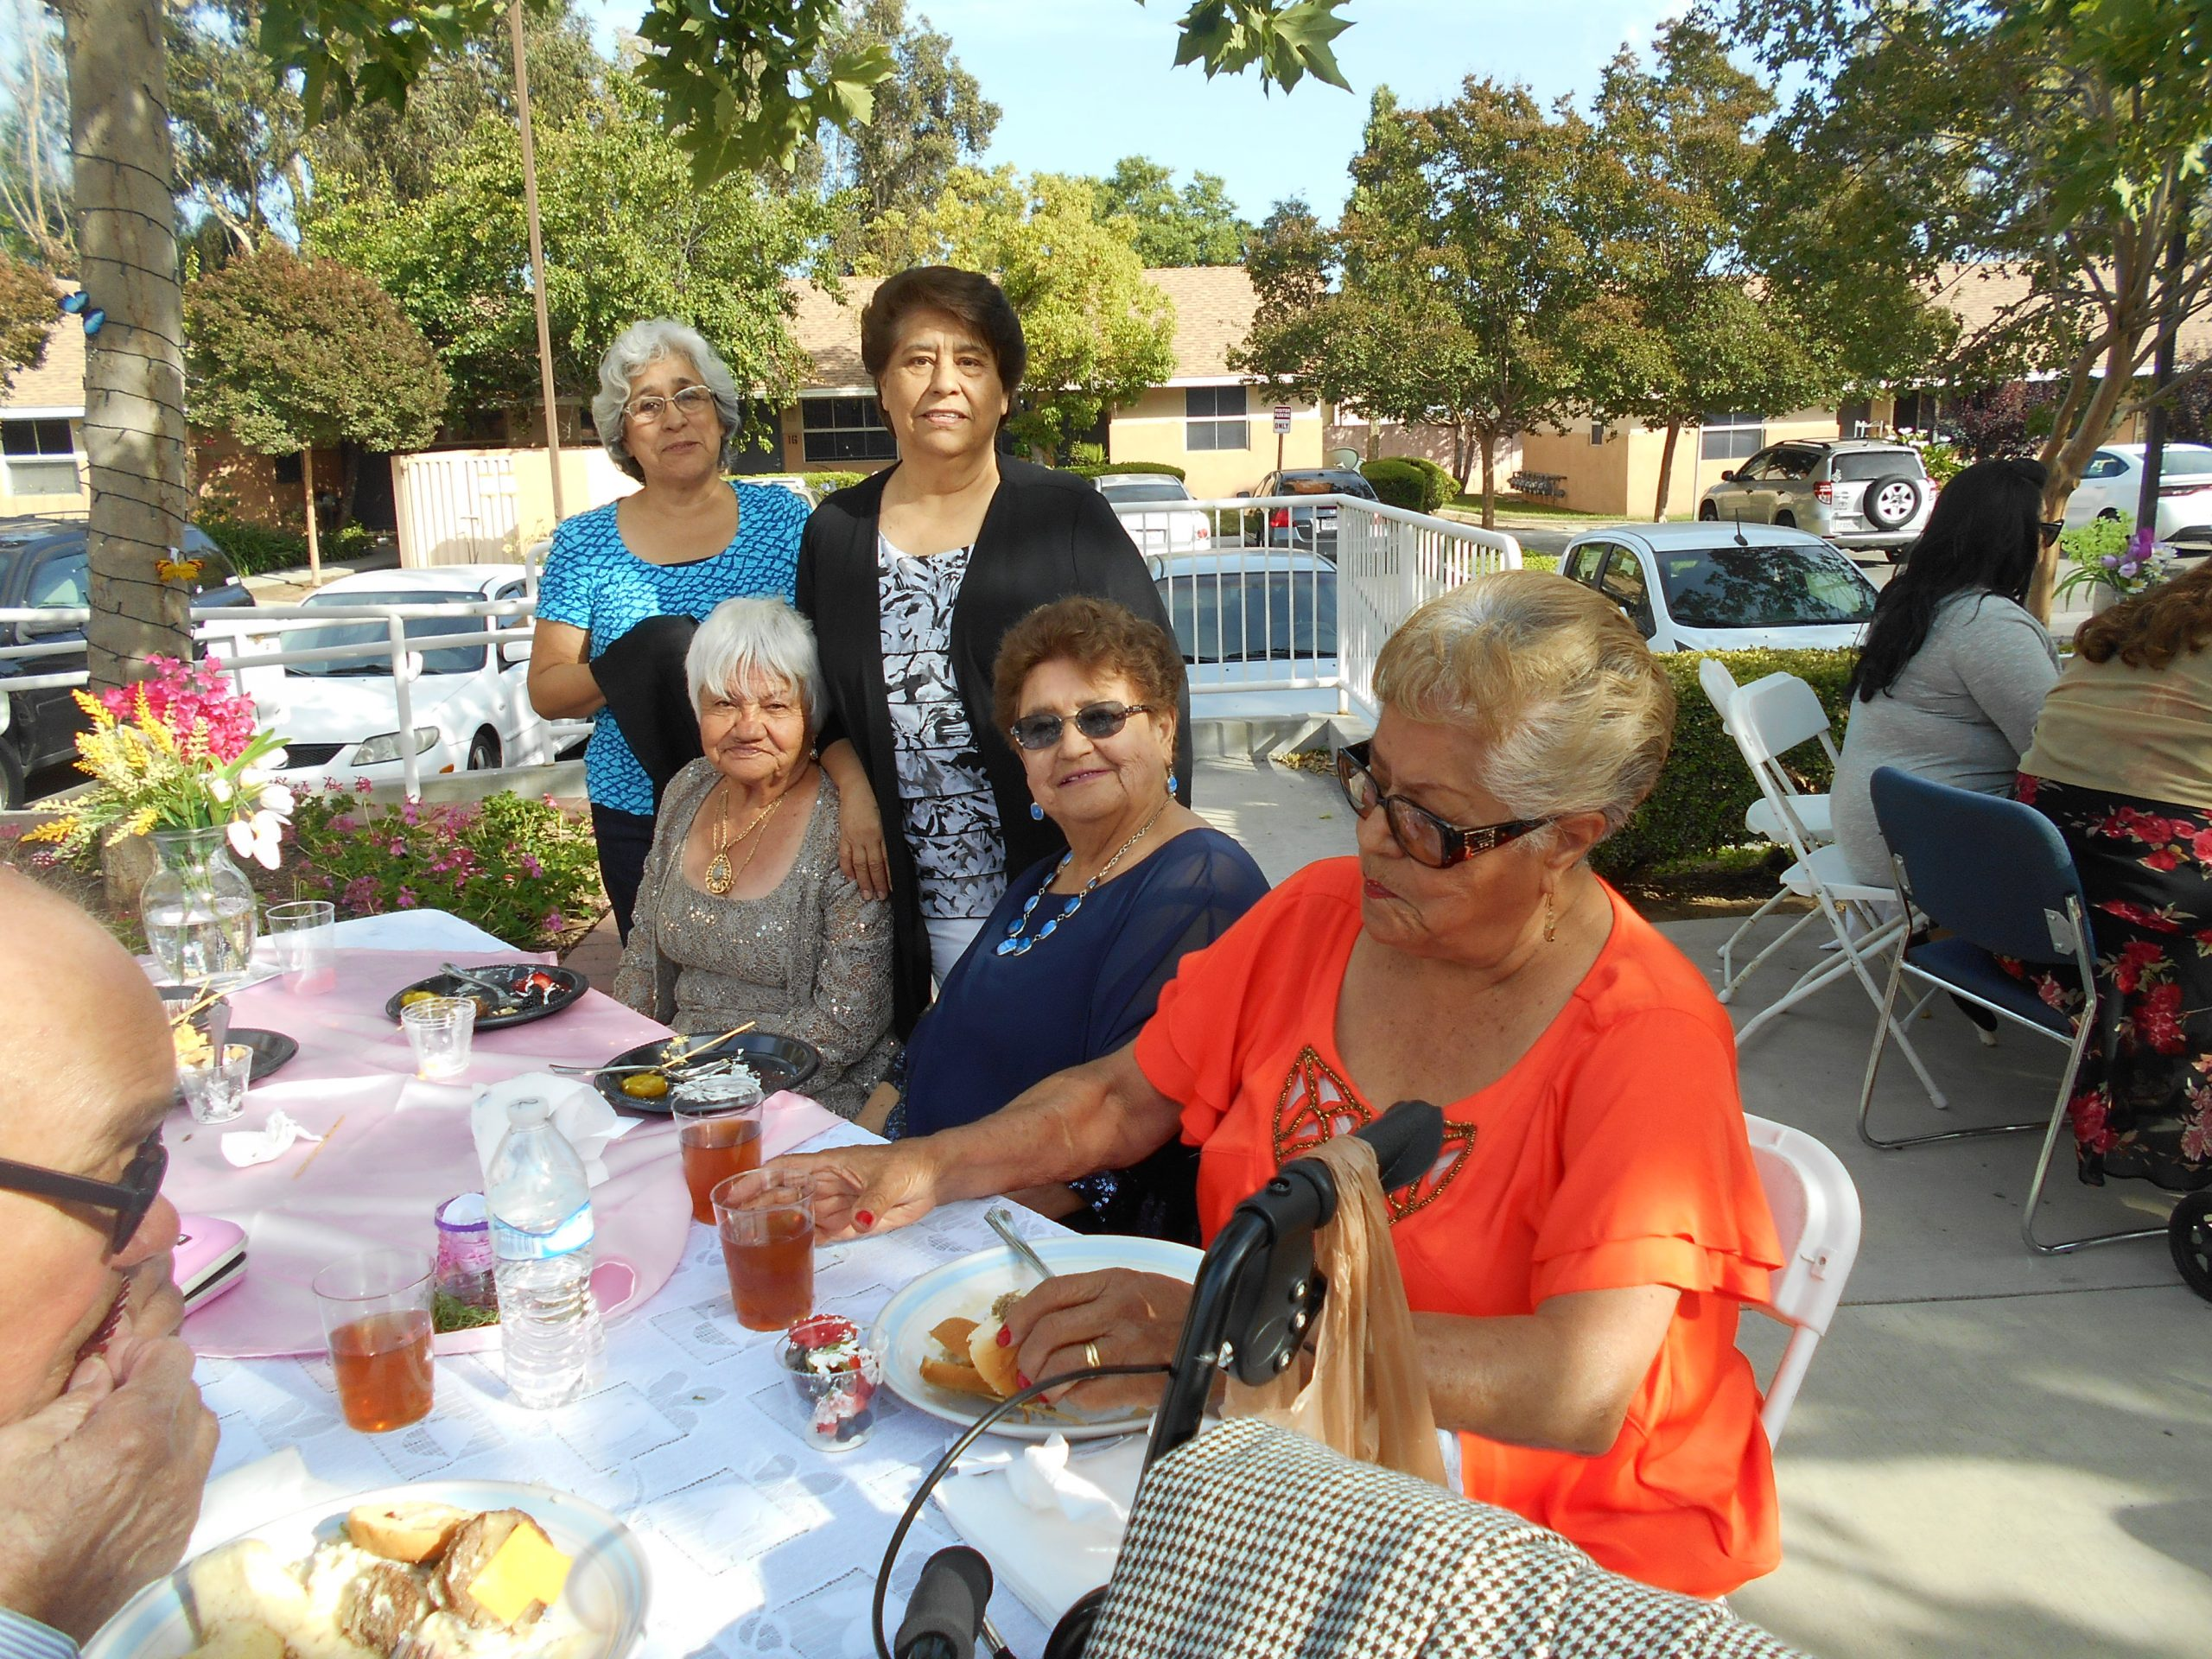 Photo of residents sitting outside at an event at Cambridge Gardens senior housing community.